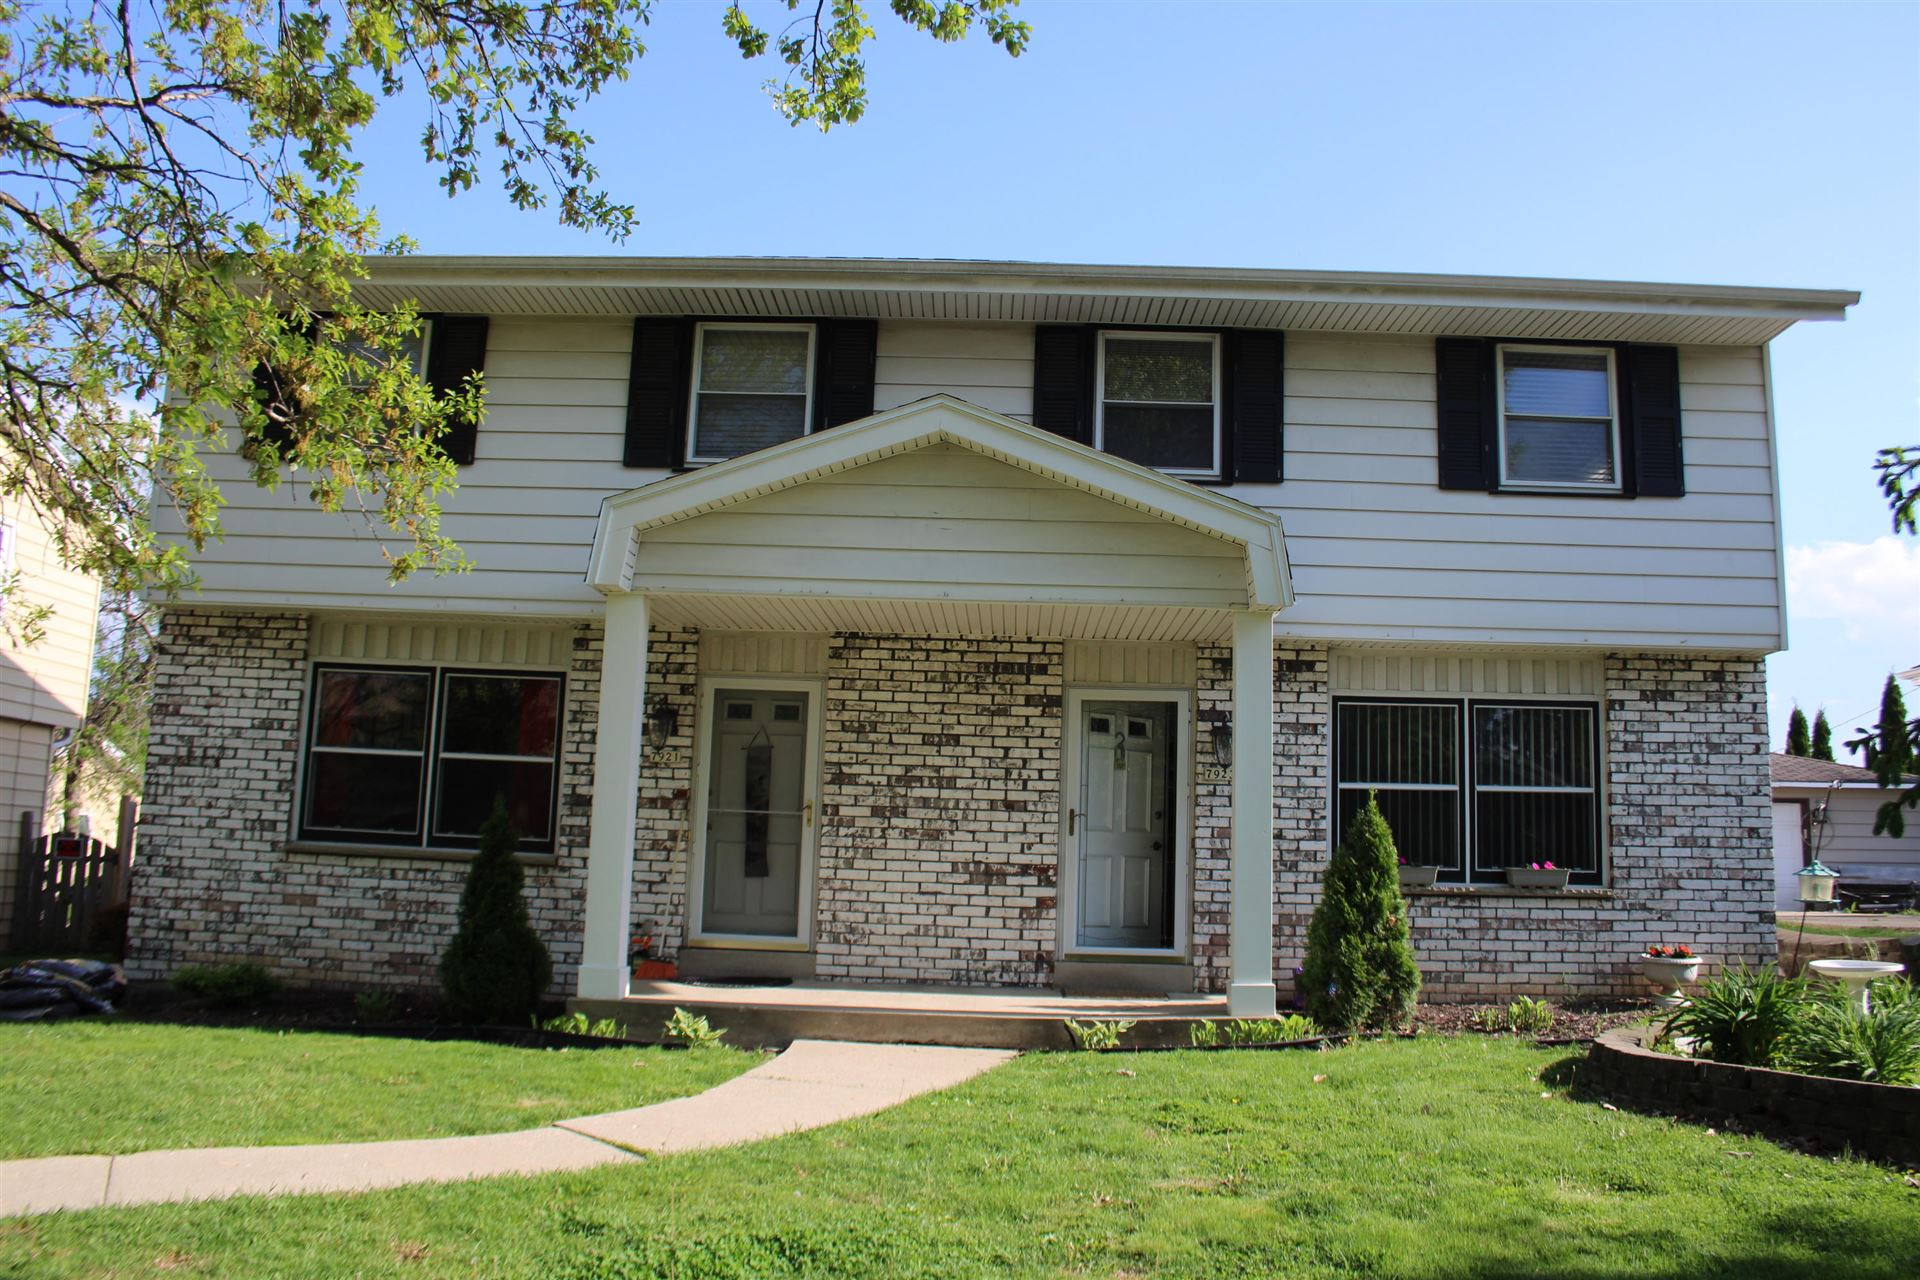 7921 W Van Beck Ave #7923, Milwaukee, WI 53220 - #: 1690327